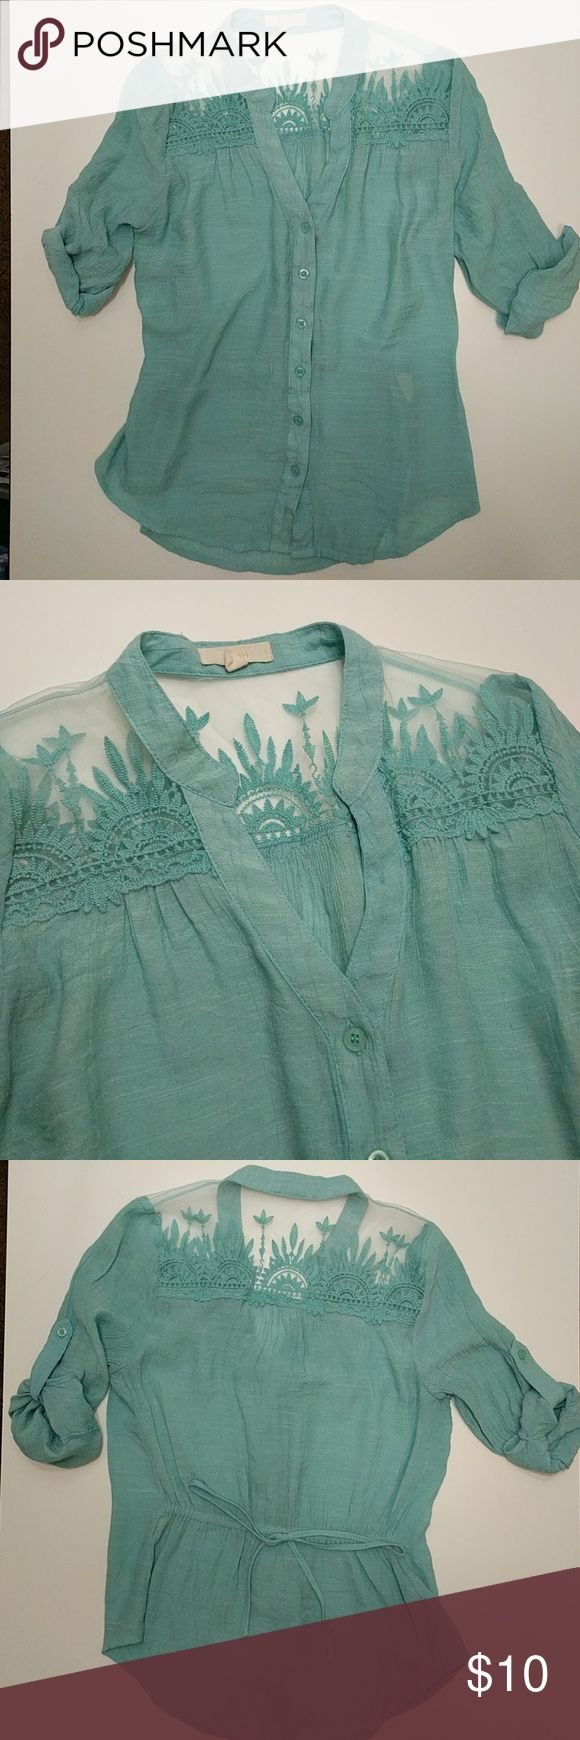 Turquoise shirt Turquoise shirt with intricate detailing near the shoulders. The back has a tie that creates a flattering shape. In the first photo that white blob in the lower right hand side is the tag in the shirt, it is visible and can be removed. pearl Tops